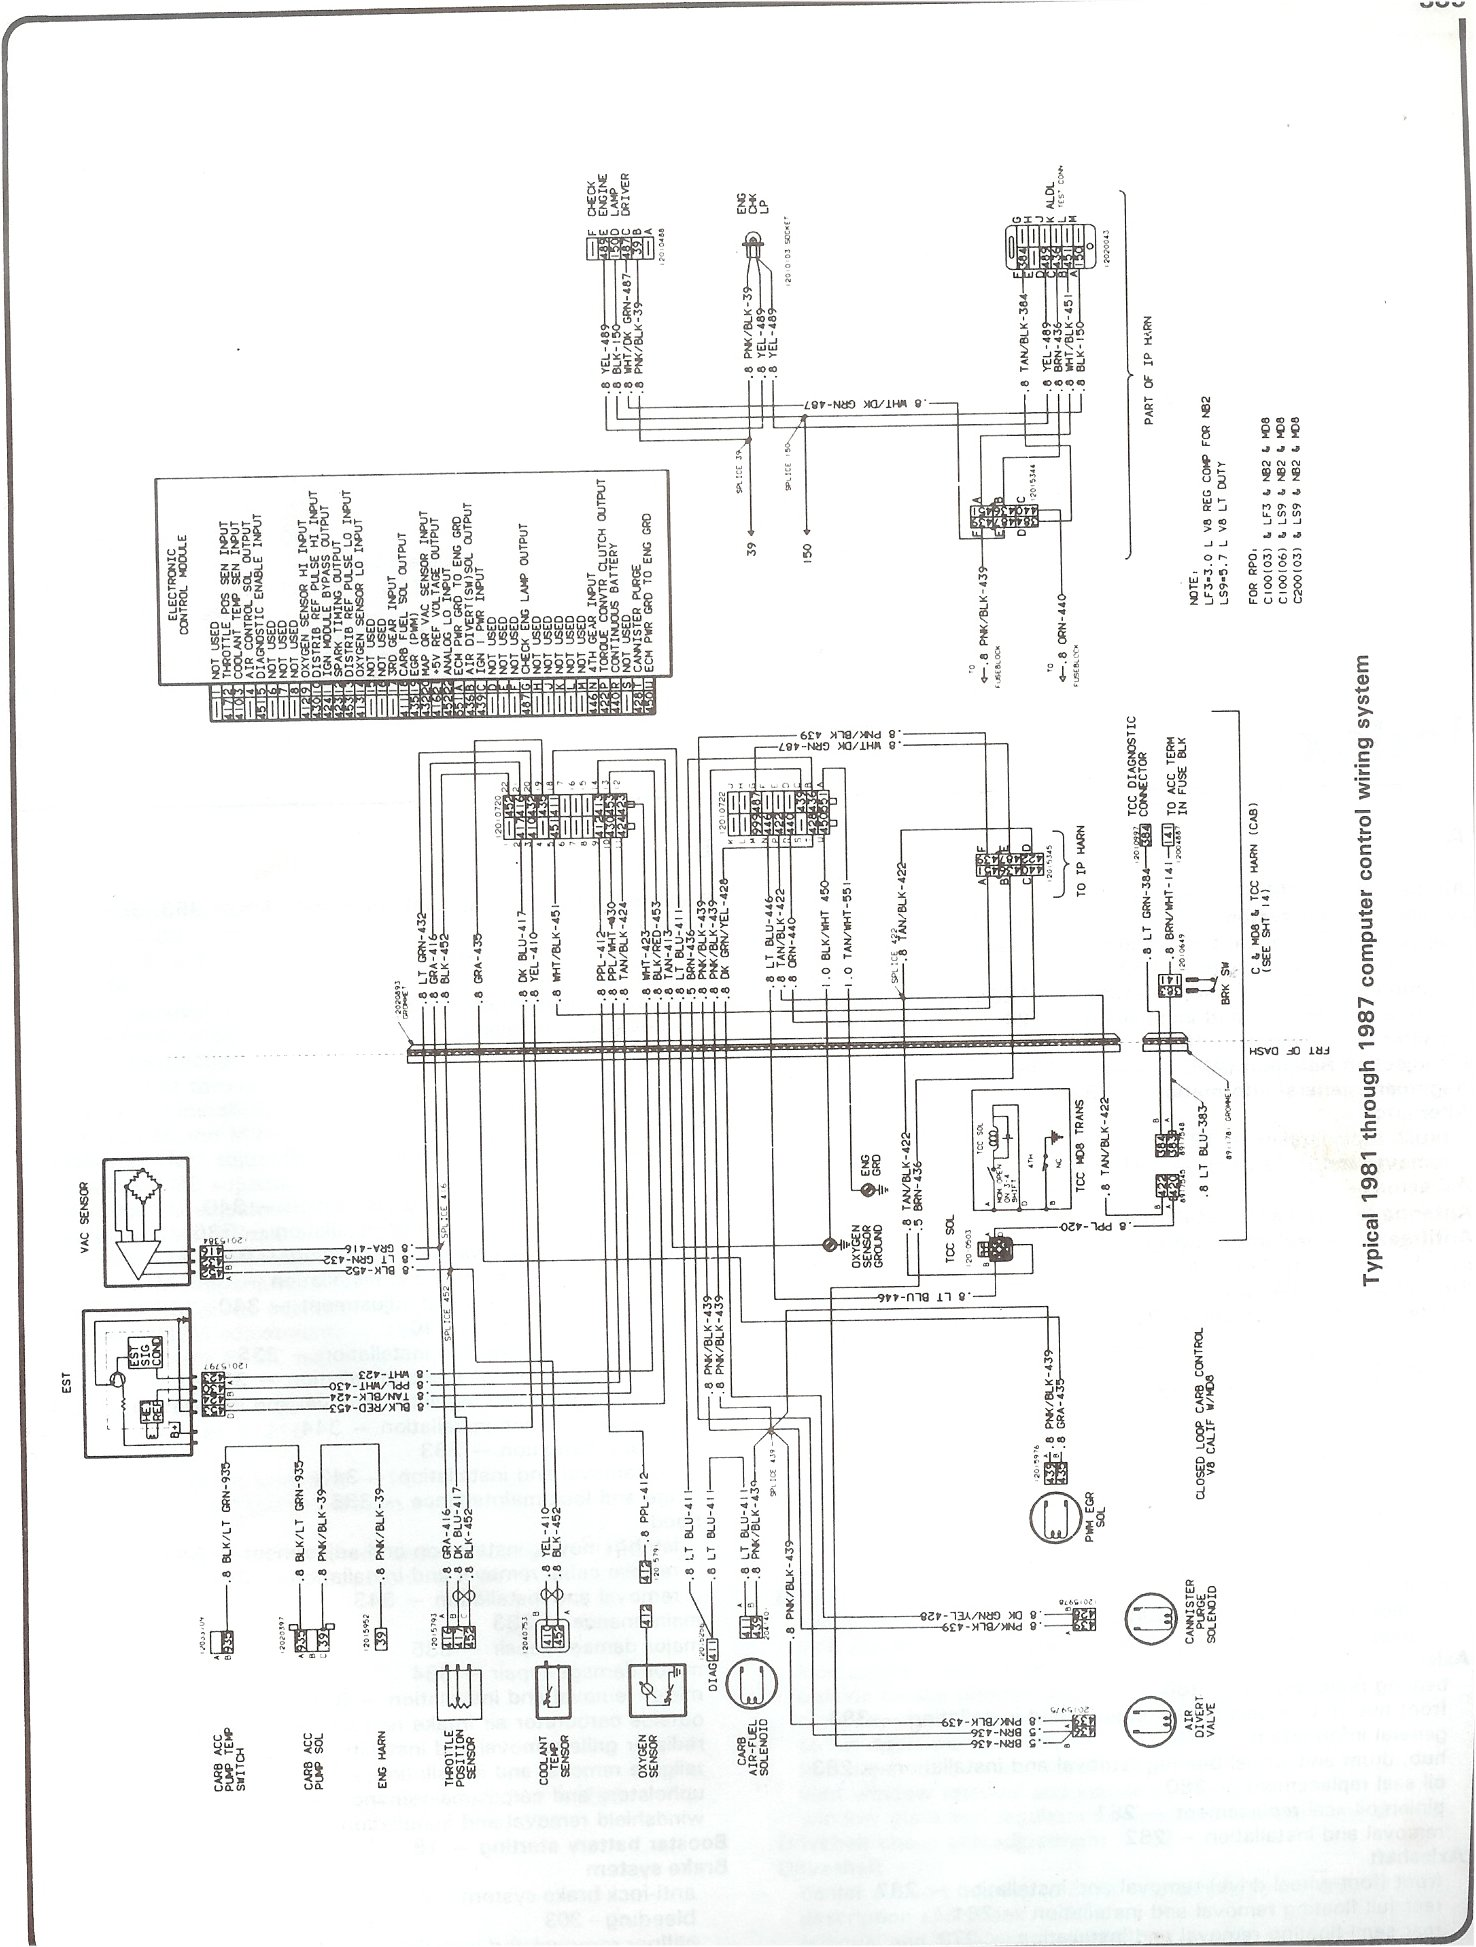 81 87_computer_control_wiring complete 73 87 wiring diagrams 85 chevy truck wiring diagram at eliteediting.co